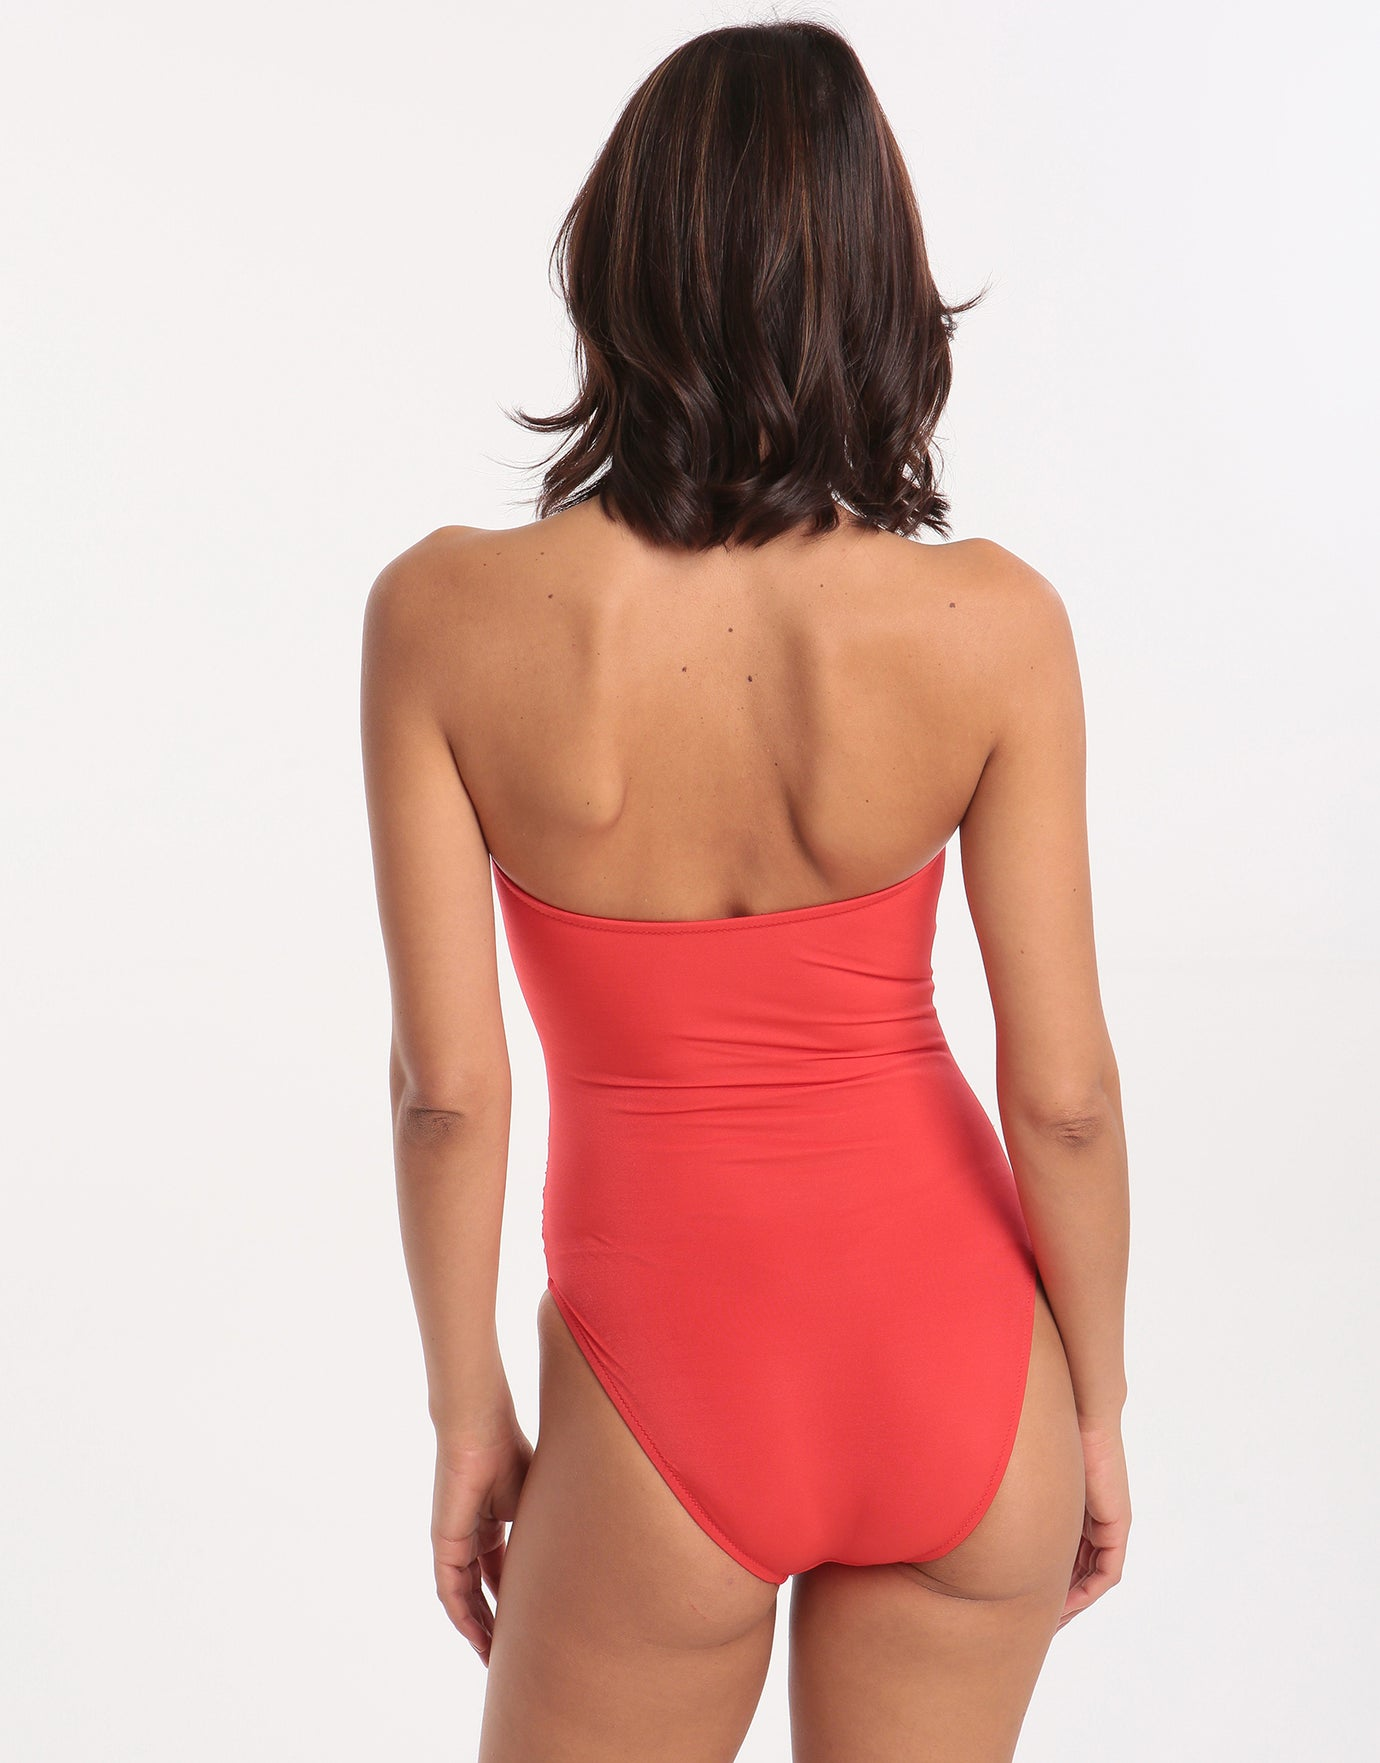 Roidal Ceylan Linda Soft B Cup Swimsuit - Red Coral